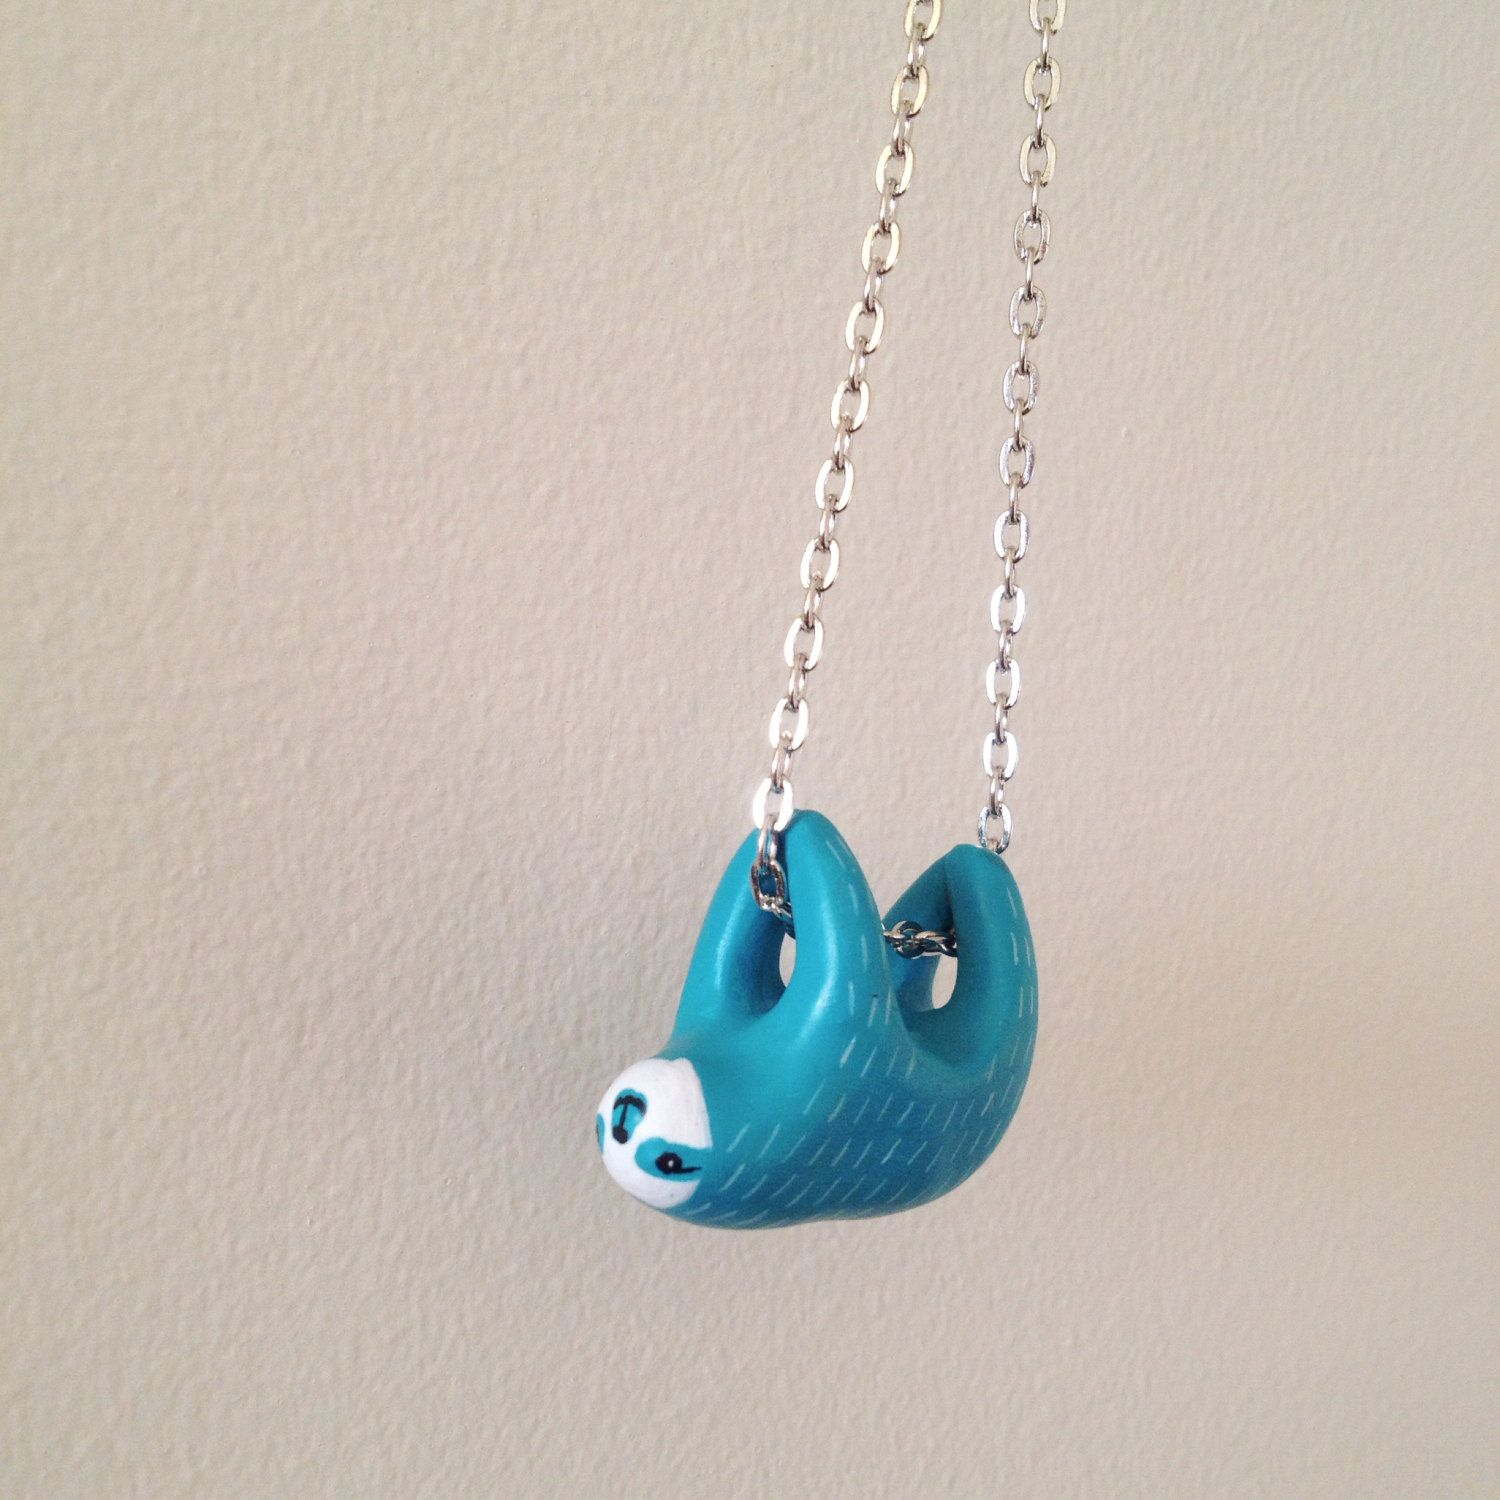 on sloth necklace silver sterling pin sculpted handmade porcelain pendant hanging sleepy ceramic